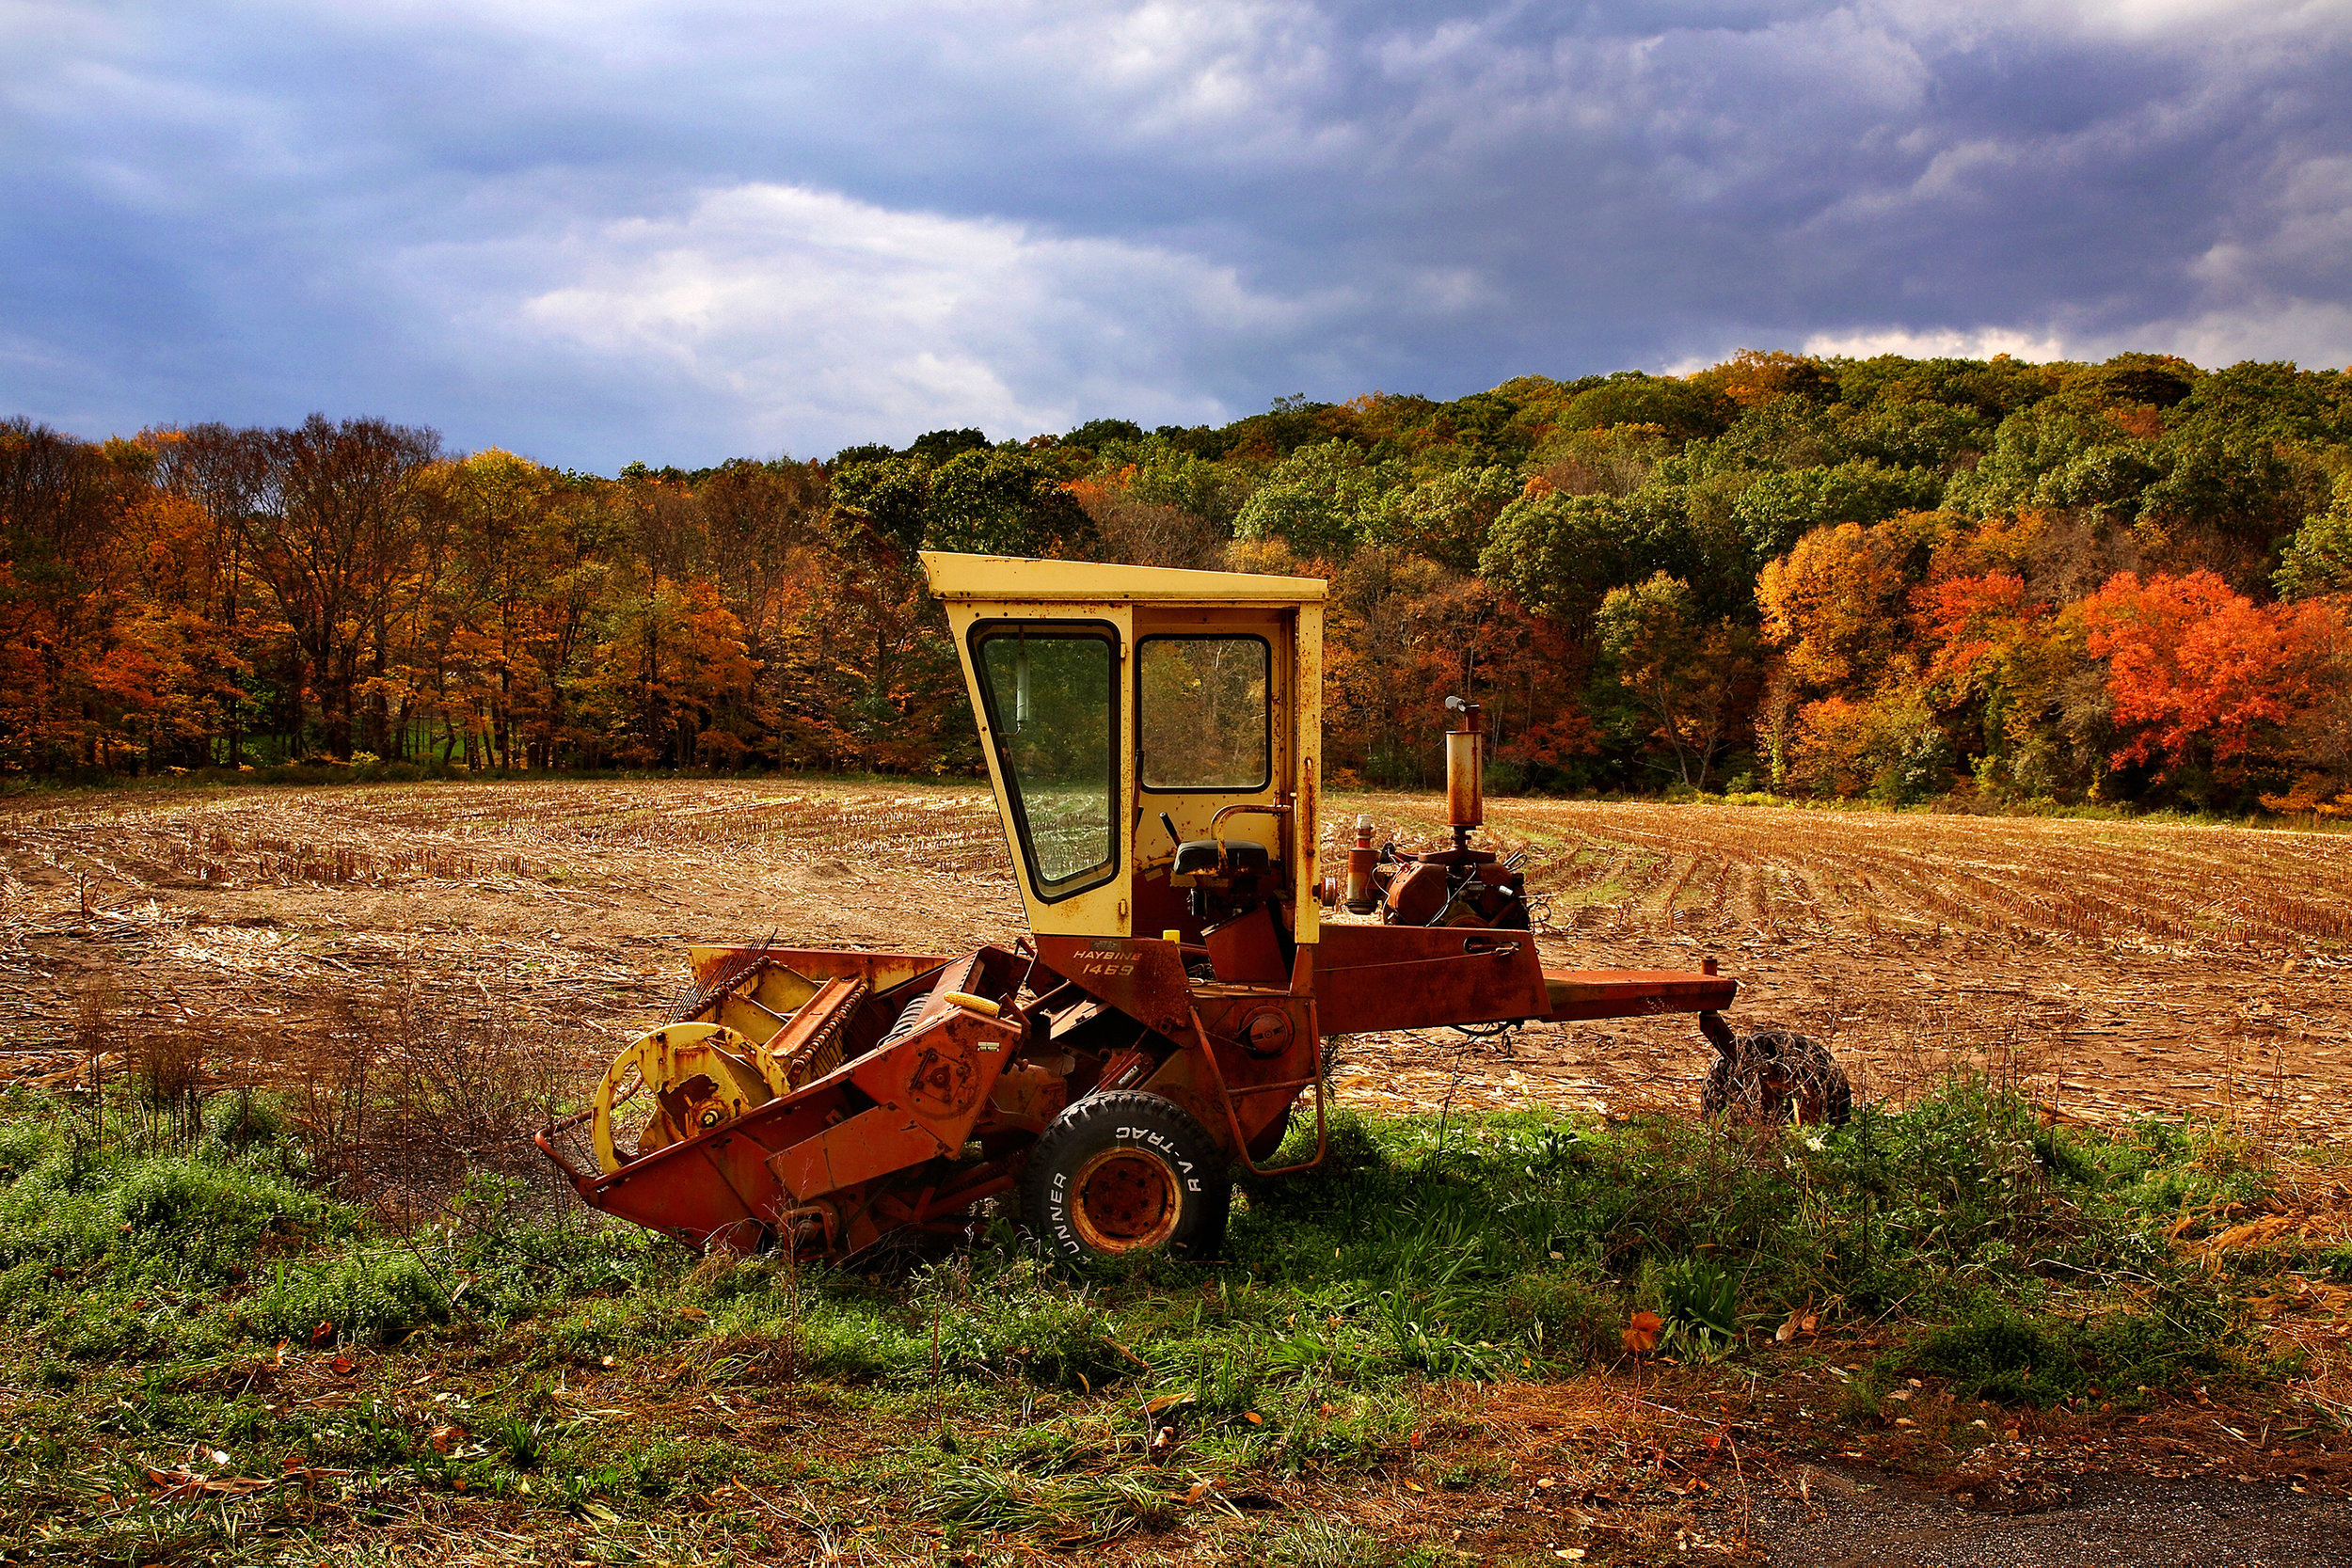 FARM-TRACTOR-IN--CONNECTICUT-FIELD-LANDSCAPES-101511--©-JONATHAN-R.-BECKERMAN-PHOTOGRAPHY---3.jpg